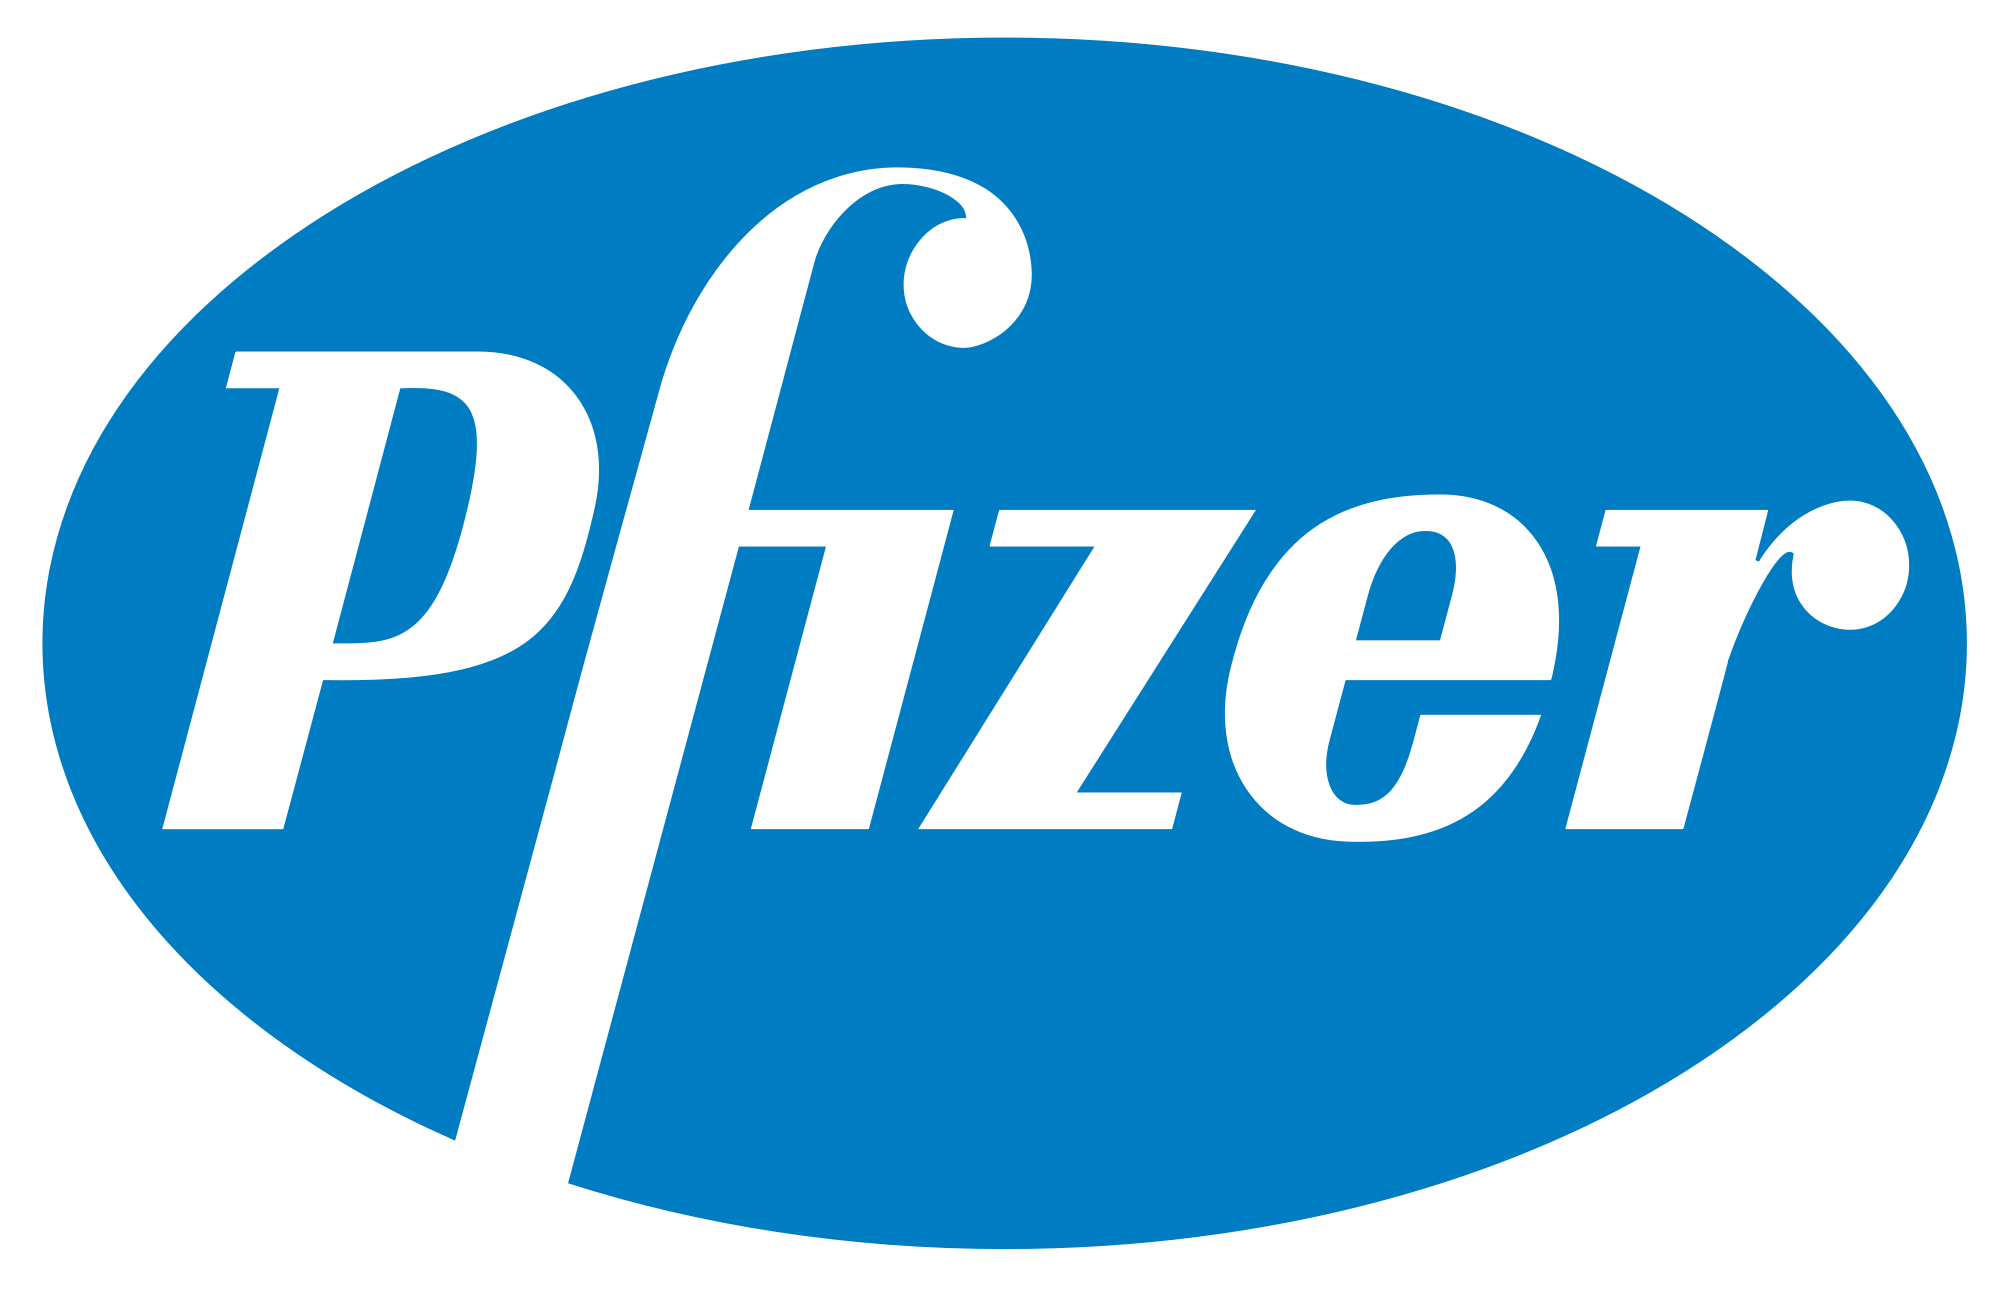 Pfizer To Split The Company In Three Units